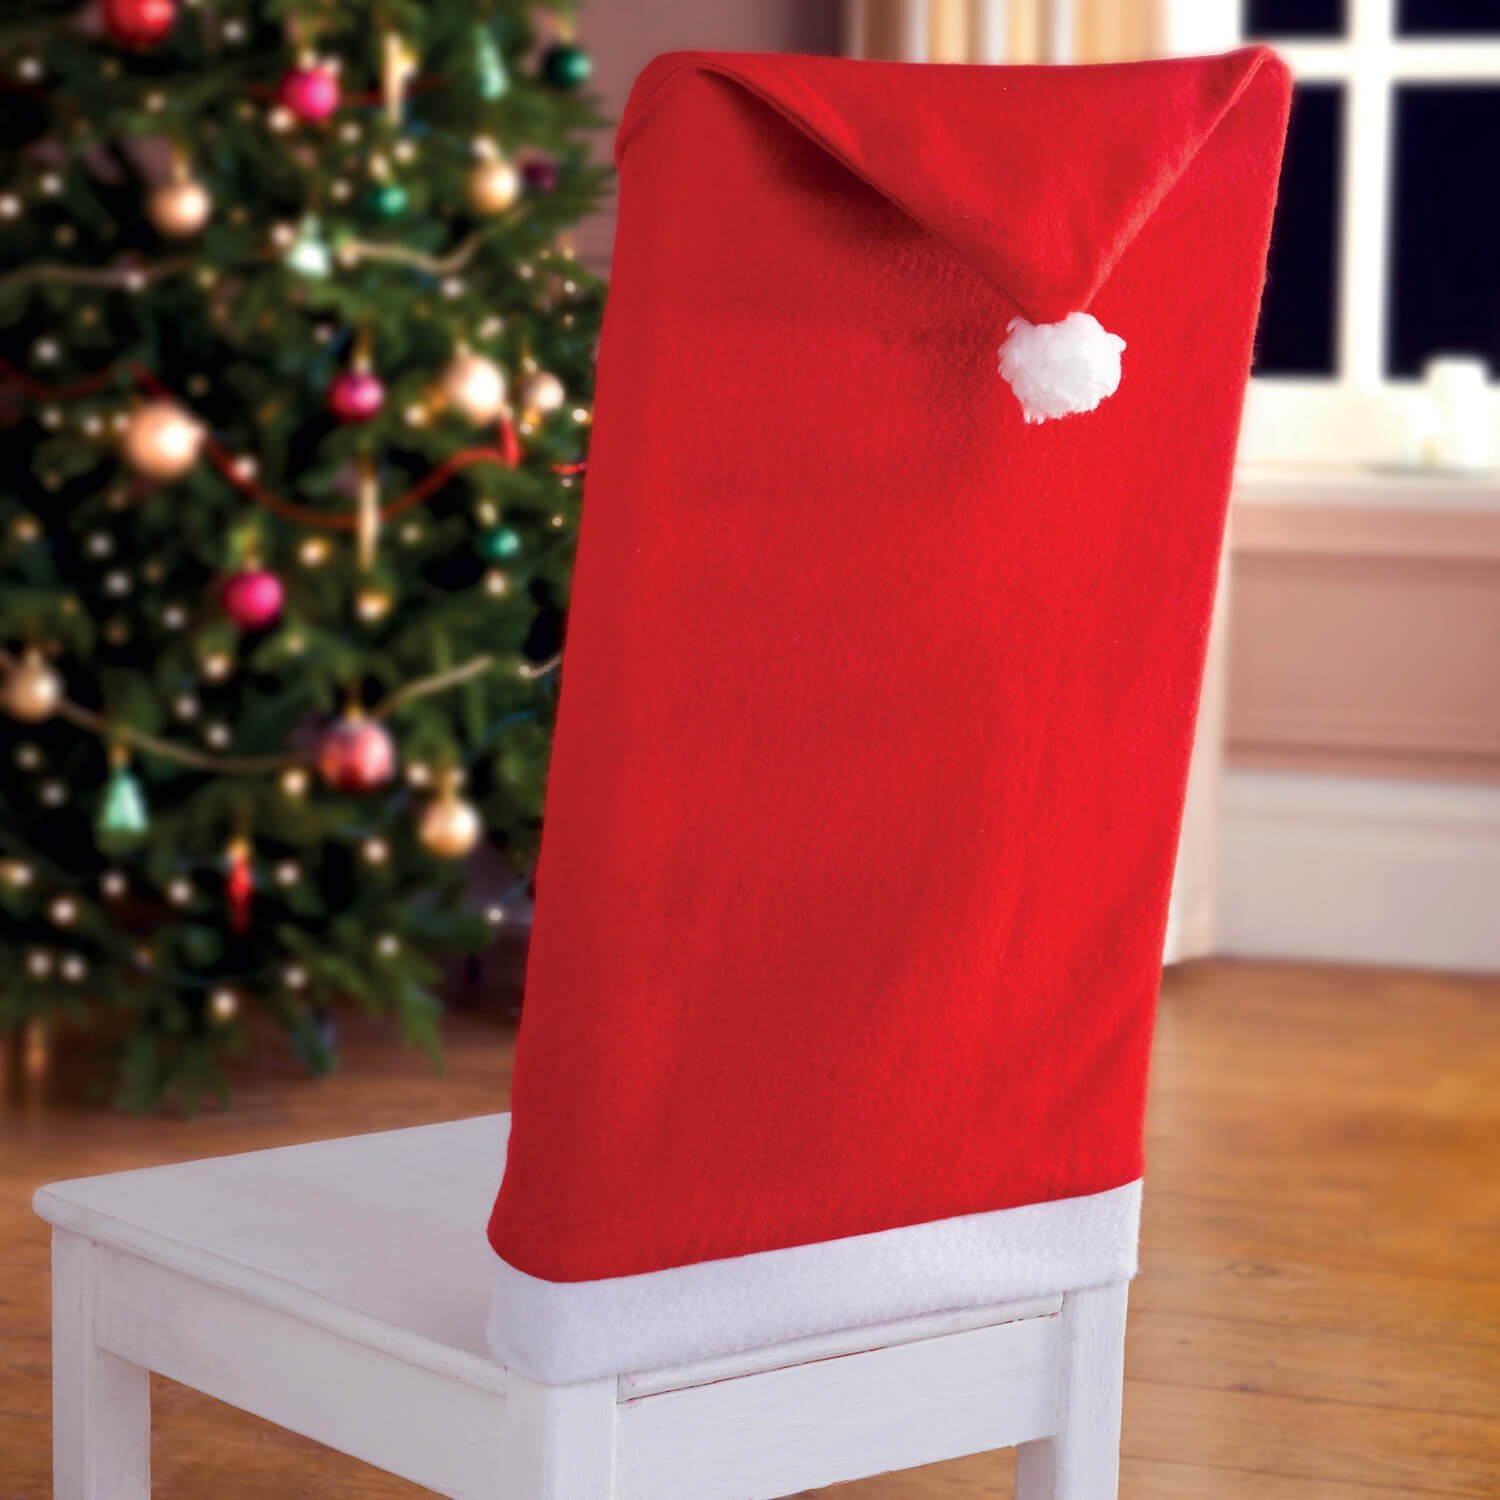 Outstanding Set Of Two Santa Hat Chair Covers 060998 Squirreltailoven Fun Painted Chair Ideas Images Squirreltailovenorg